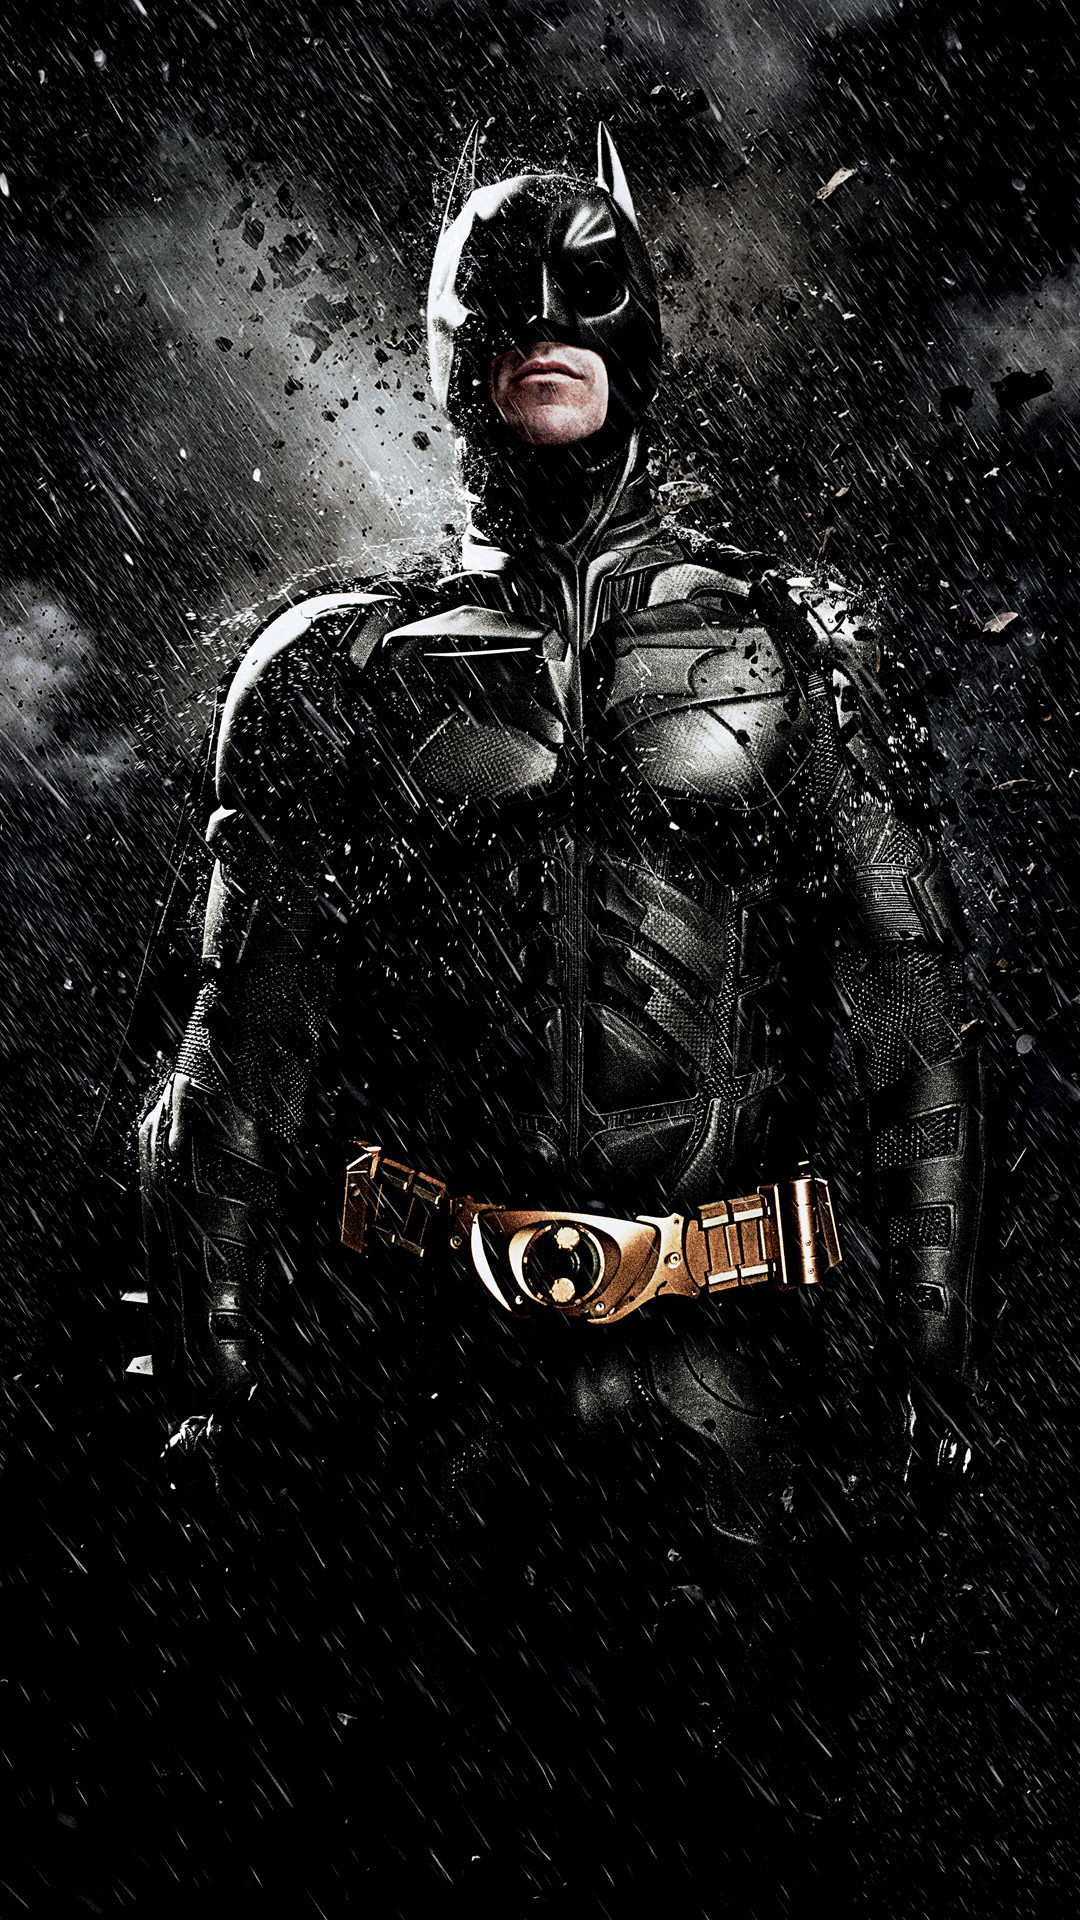 Batman The Dark Knight Rises – Best htc one wallpapers, free and .